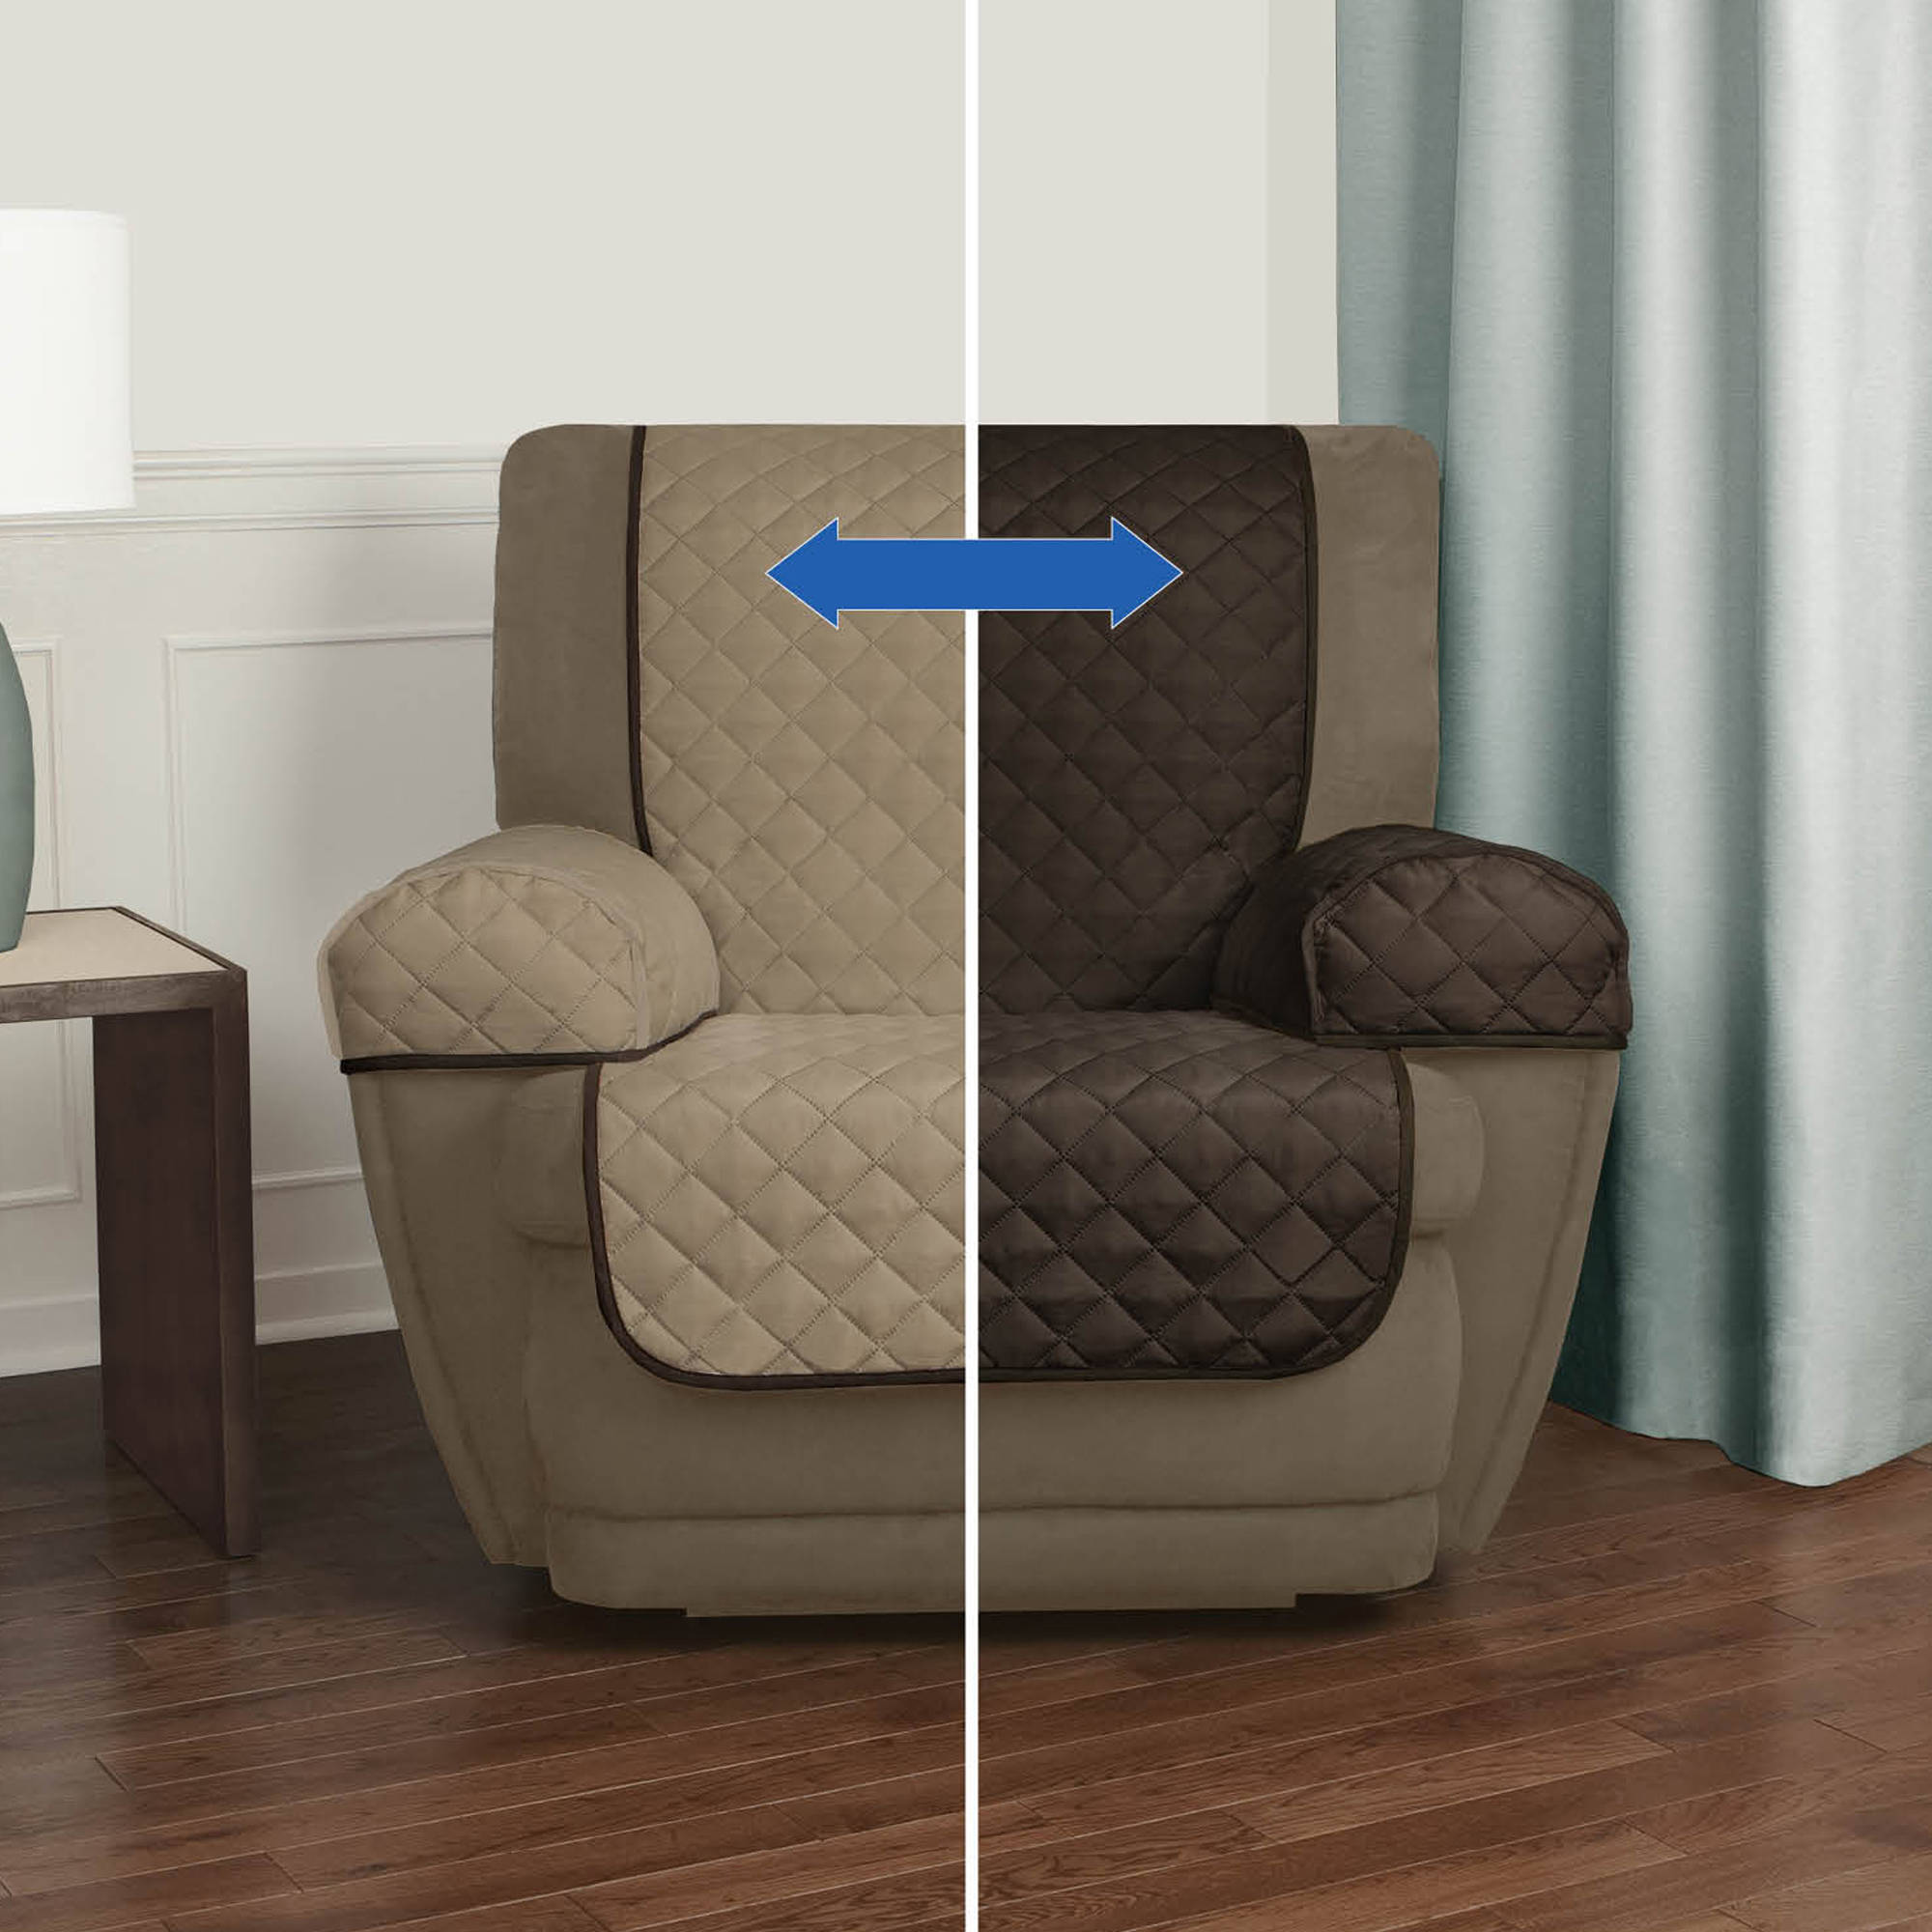 Mainstays Reversible 3 Piece Microfiber Recliner Chair Furniture Cover Protector, Brown / Tan